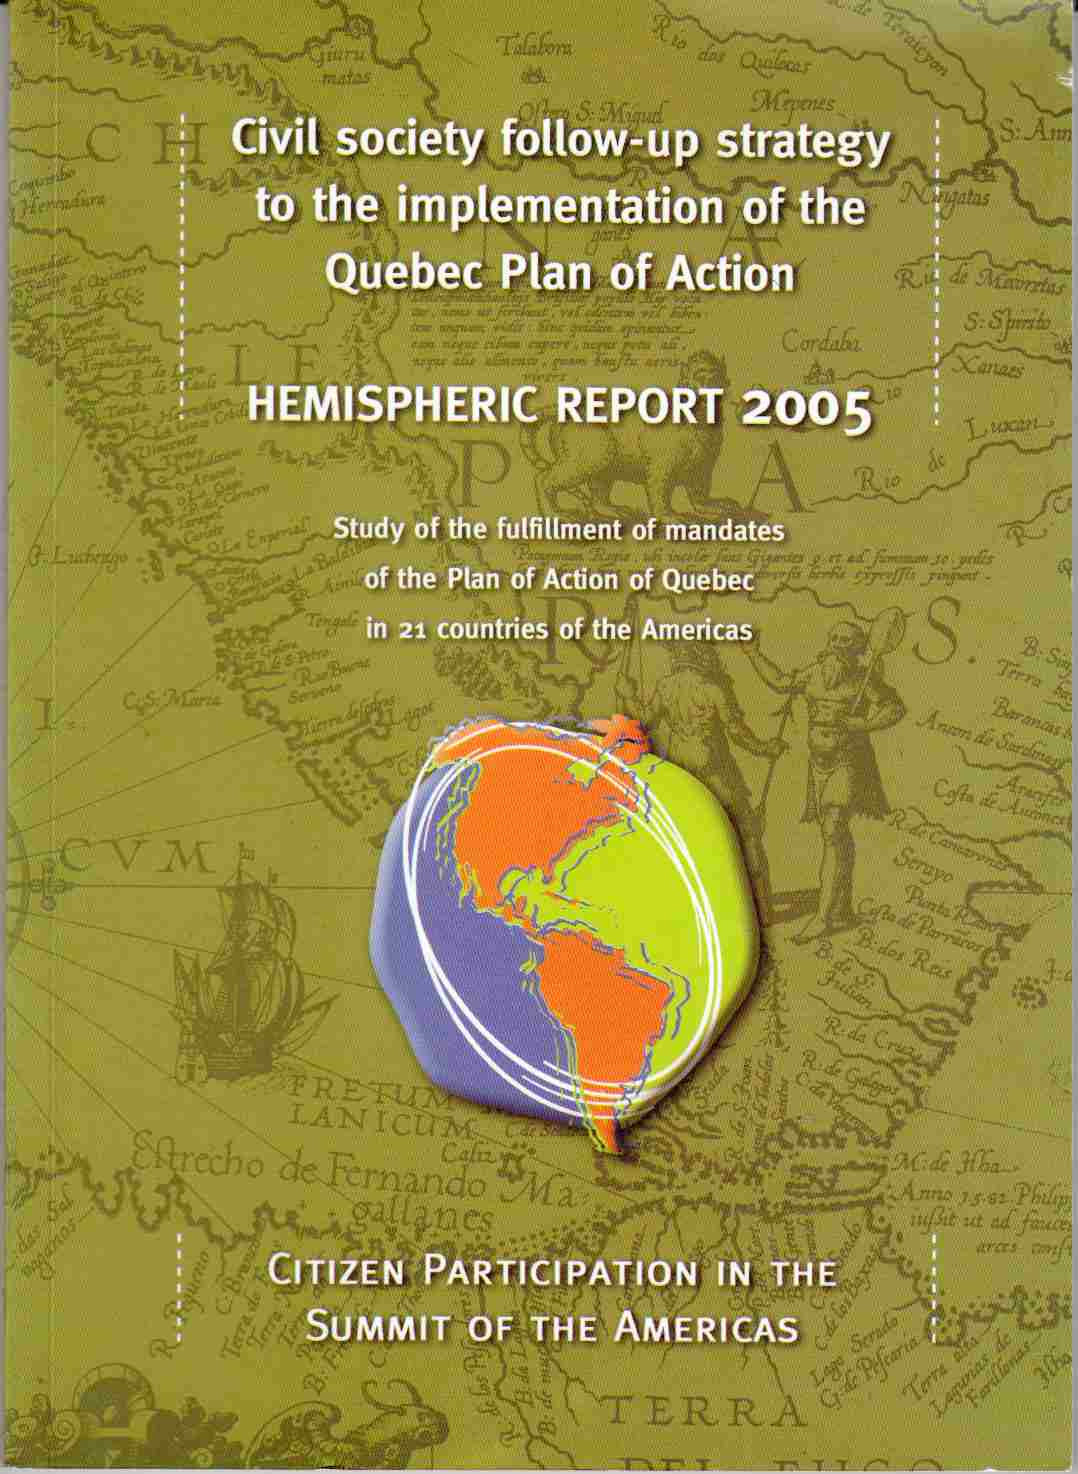 Image for Hemispheric Report 2005 / Informe Hemisferico 2005 Civil Society Follow-Up Strategy to the Implementation of the Quebec Plan of Action / Sguimiento De La Sociedad Civil a La Implementacion Del Plan De Accion De Quebec